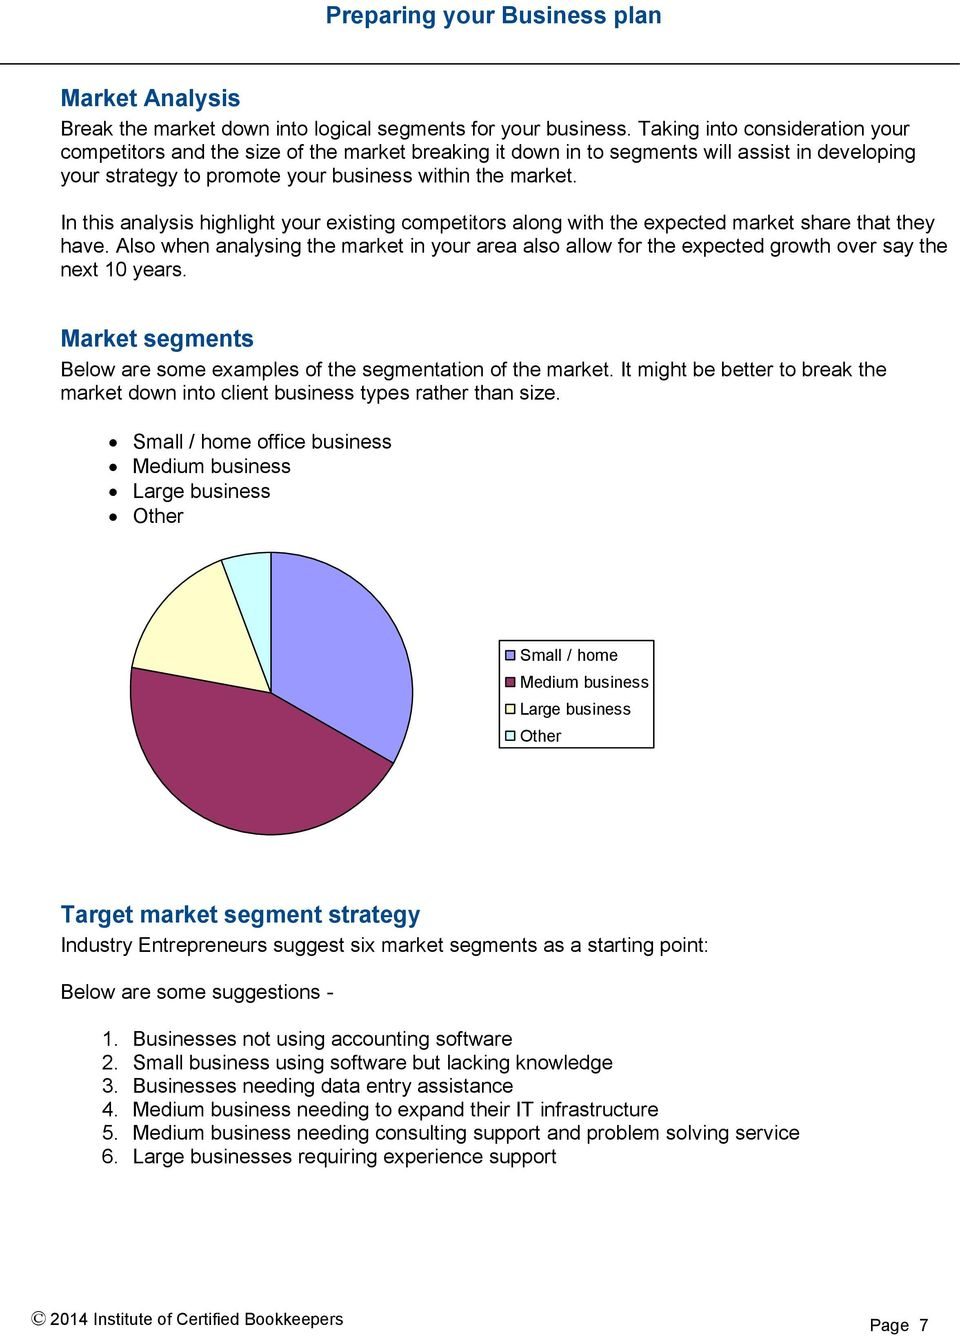 In this analysis highlight your existing competitors along with the expected market share that they have.